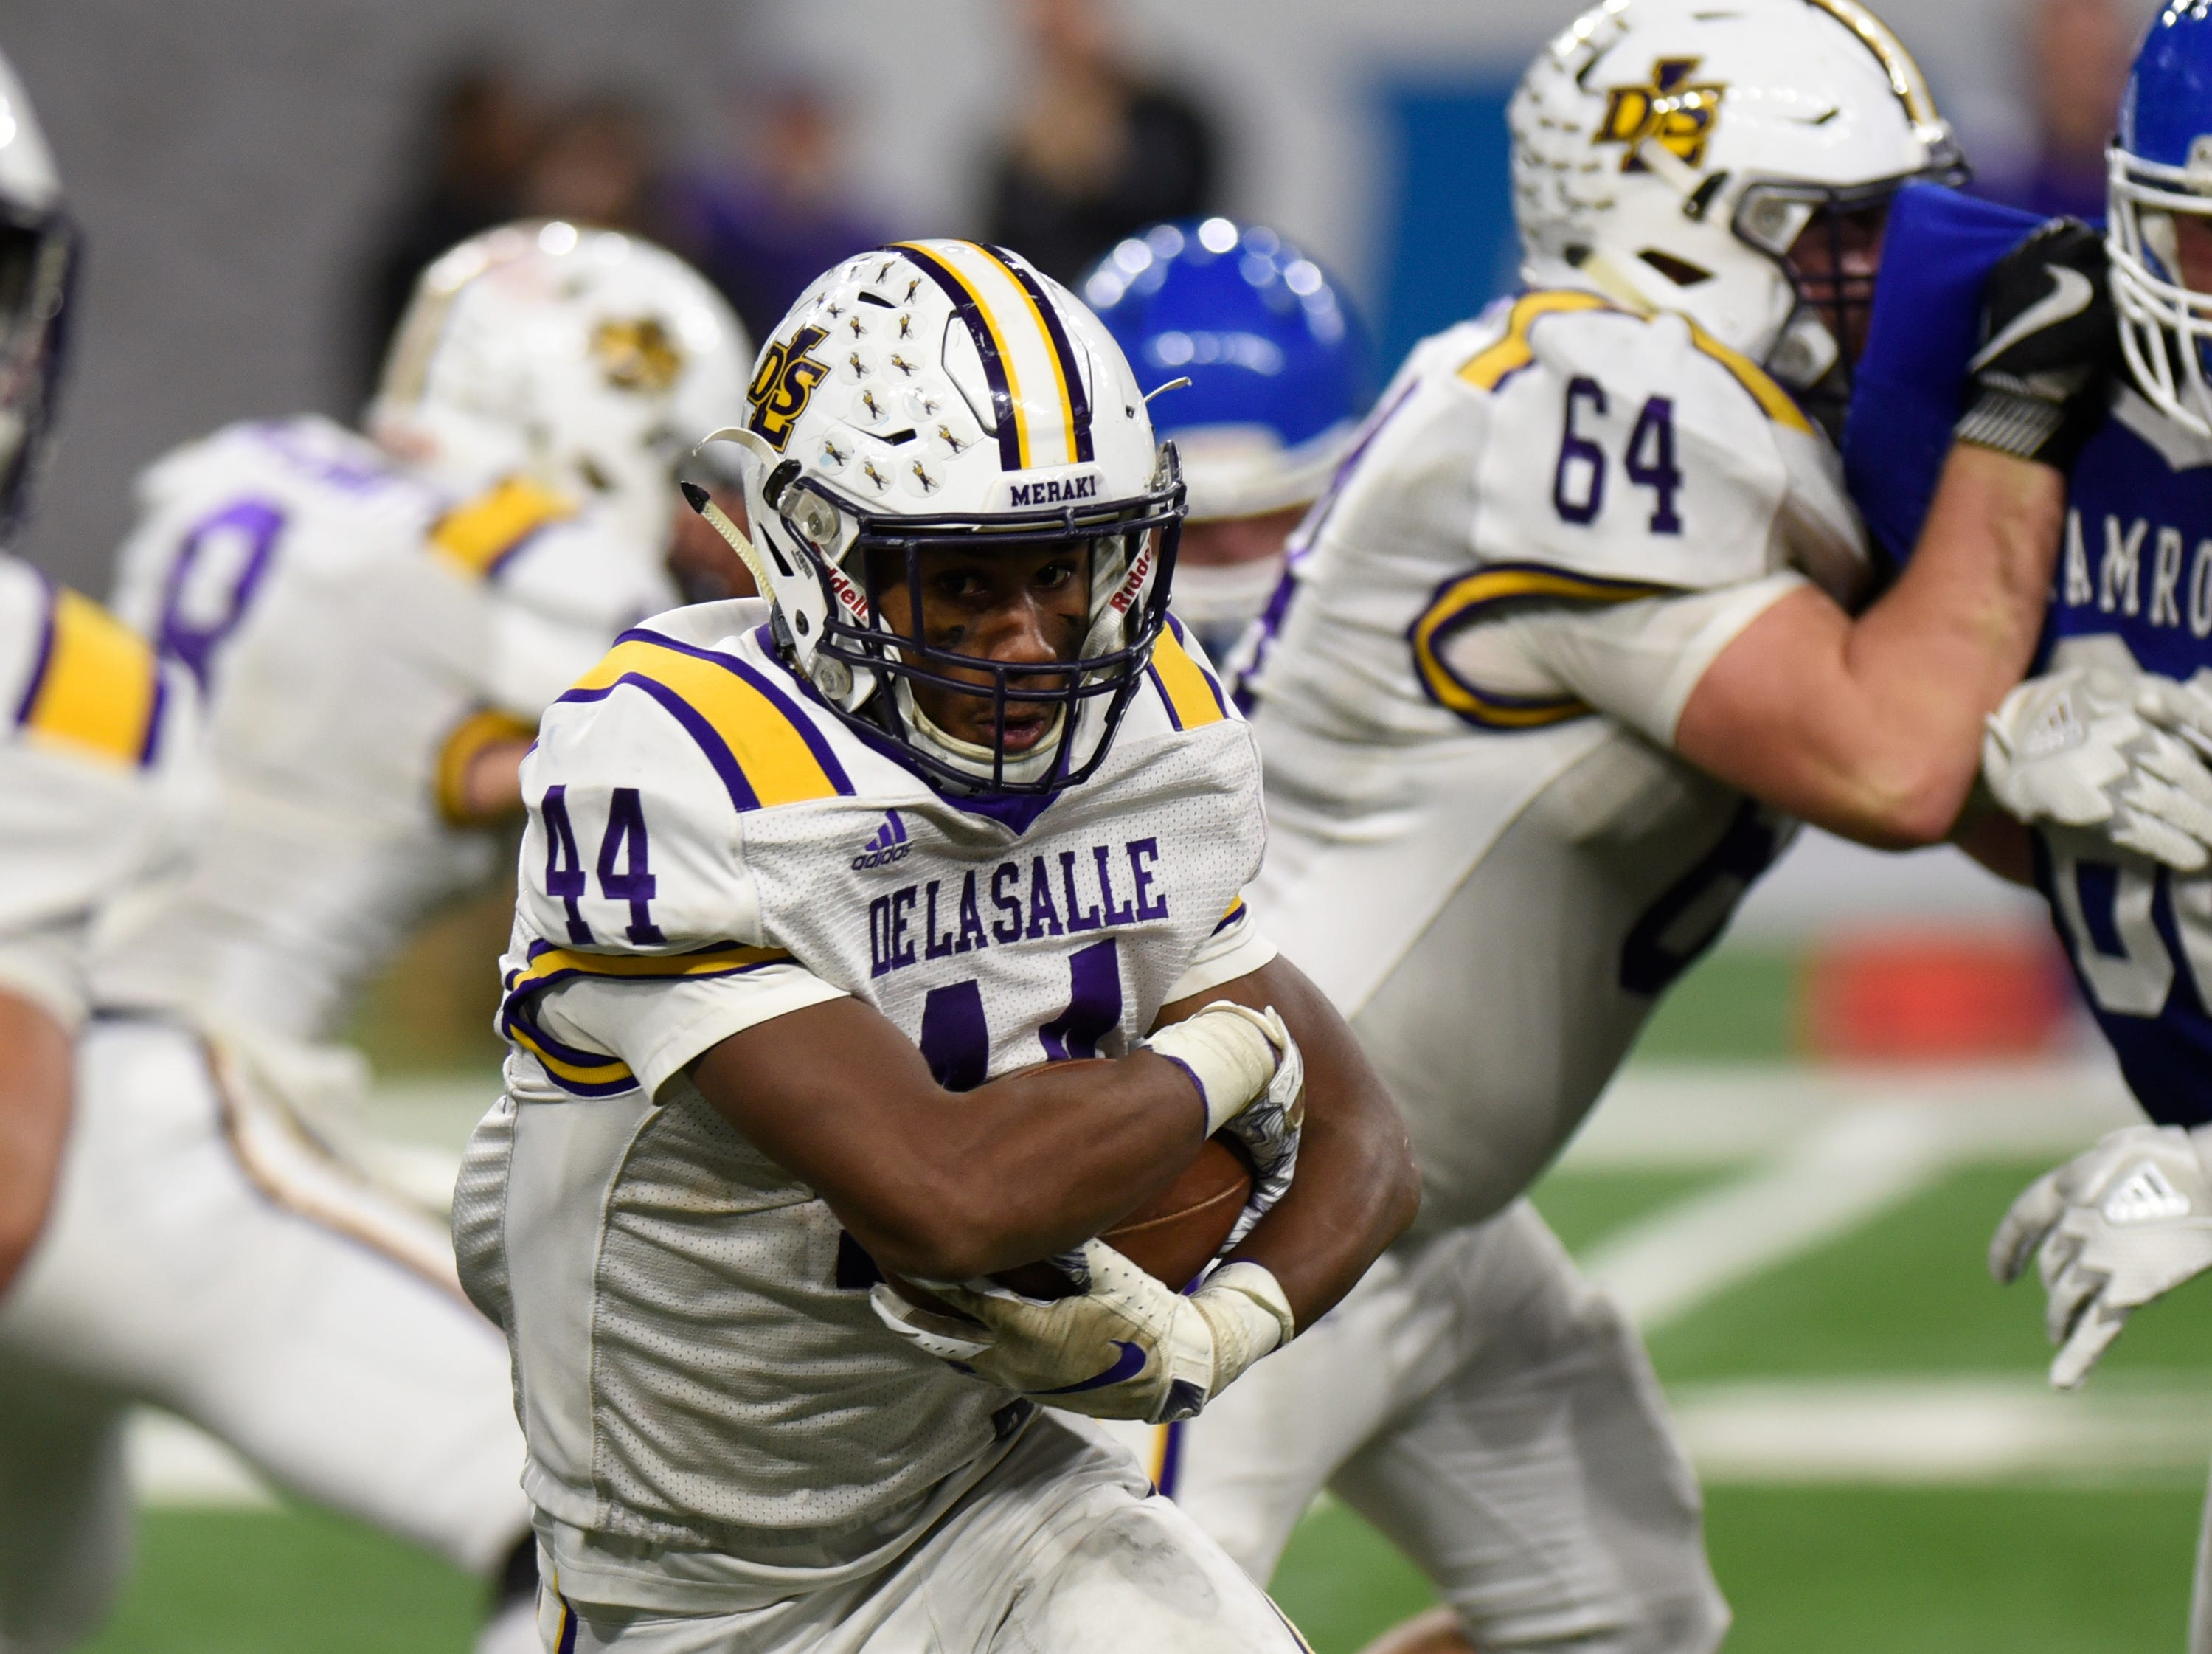 Warren De La Salle running back Jordan Rogers (44) carries the ball during Catholic League Prep Bowl AB Division championship game at Ford Field Oct. 20, 2018.